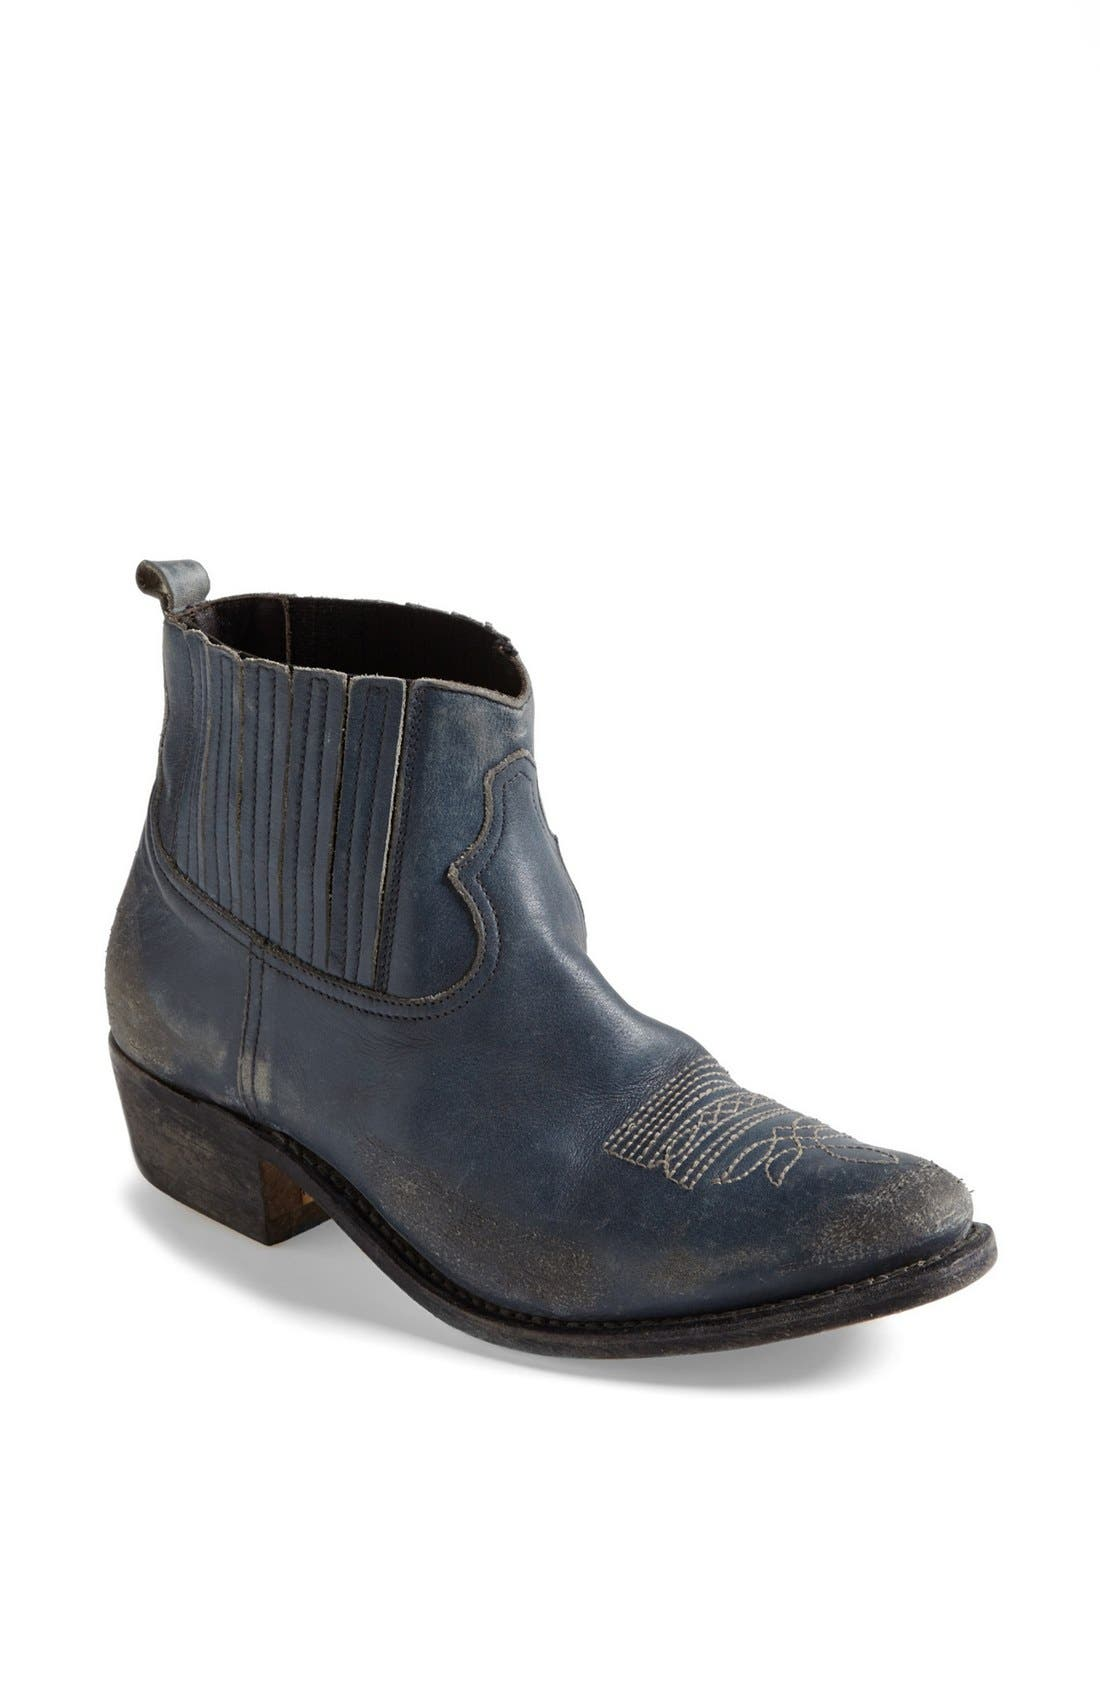 Alternate Image 1 Selected - Golden Goose 'Crosby' Boot